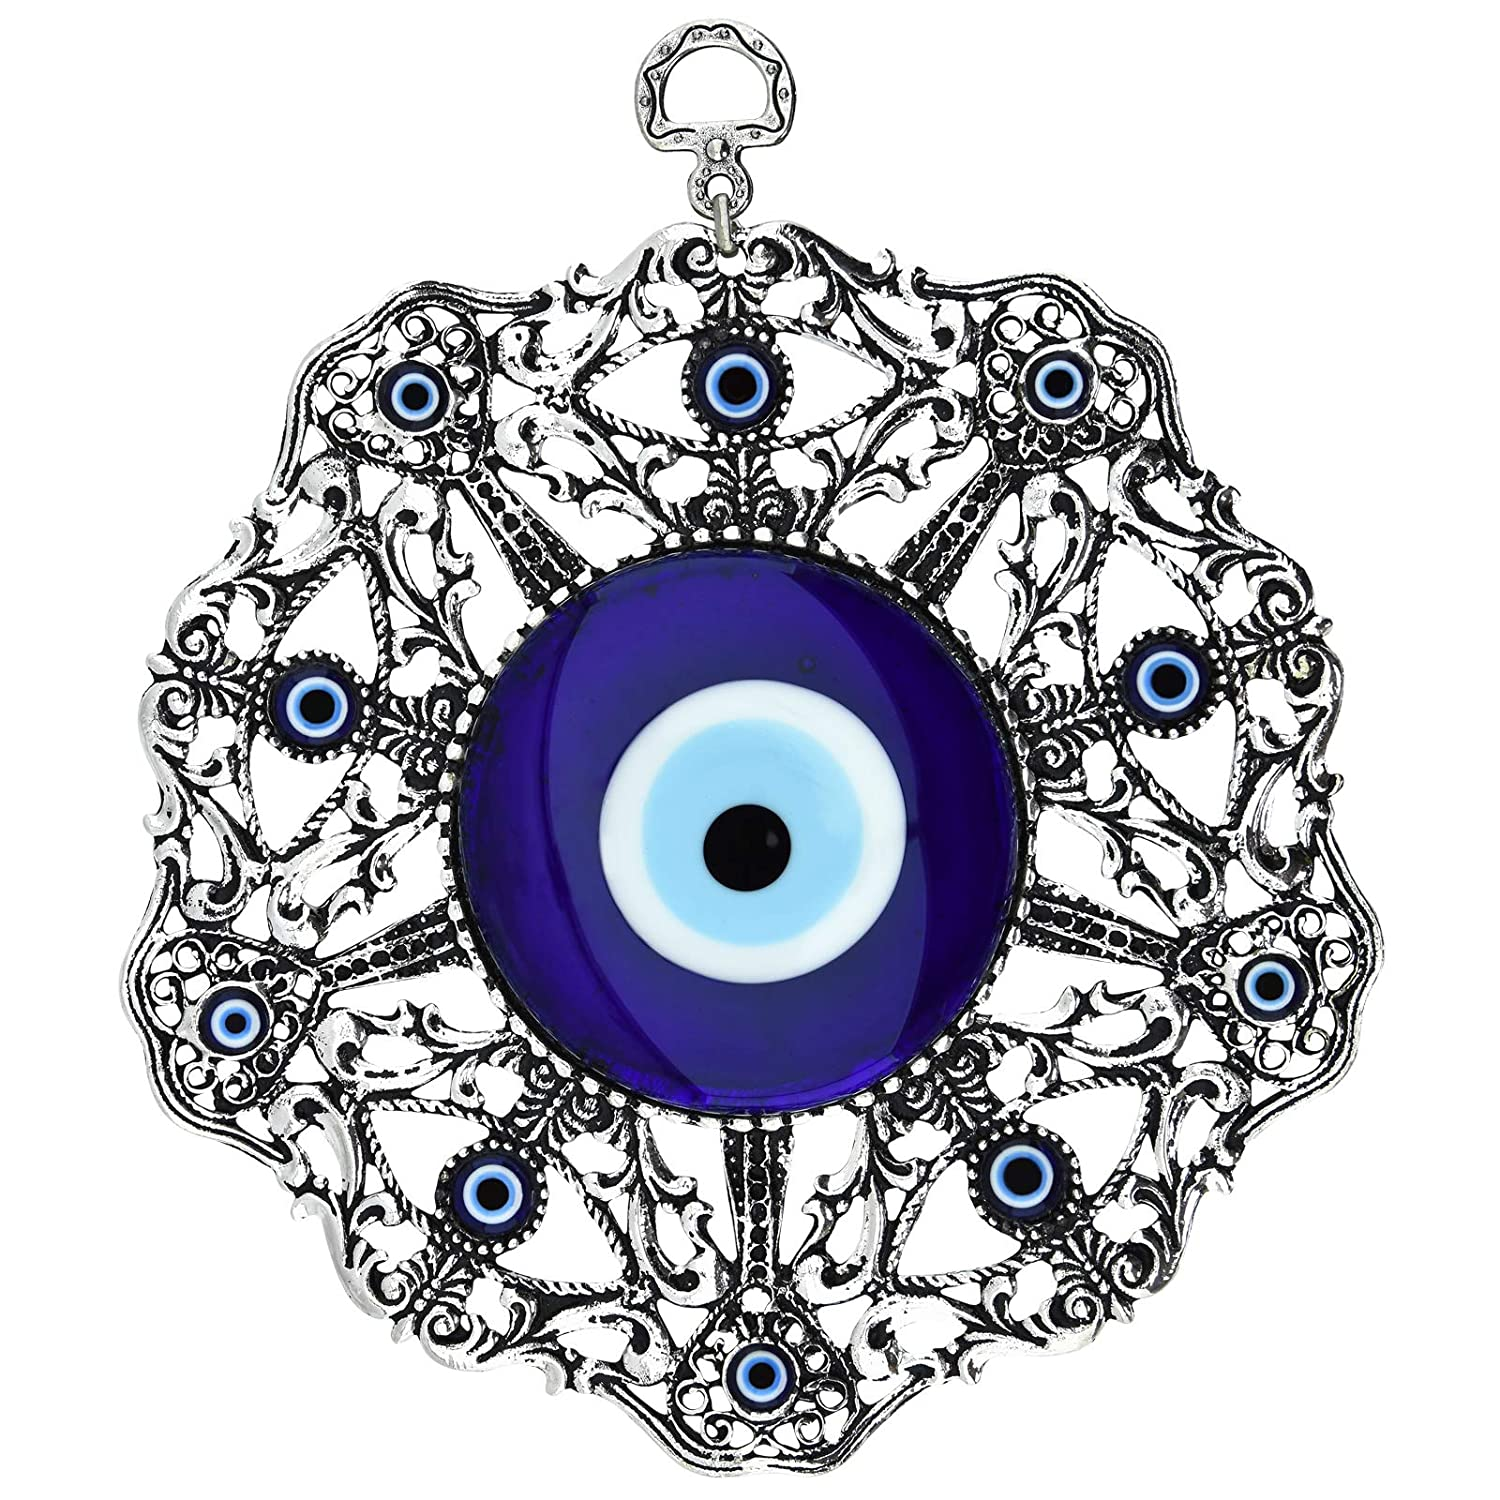 Erbulus Turkish Large Glass Blue Evil Eye Wall Hanging Ornament with Eye and Heart - Metal Home Decor - Turkish Amulet - Protection and Good Luck Charm Gift (Blue Heart)